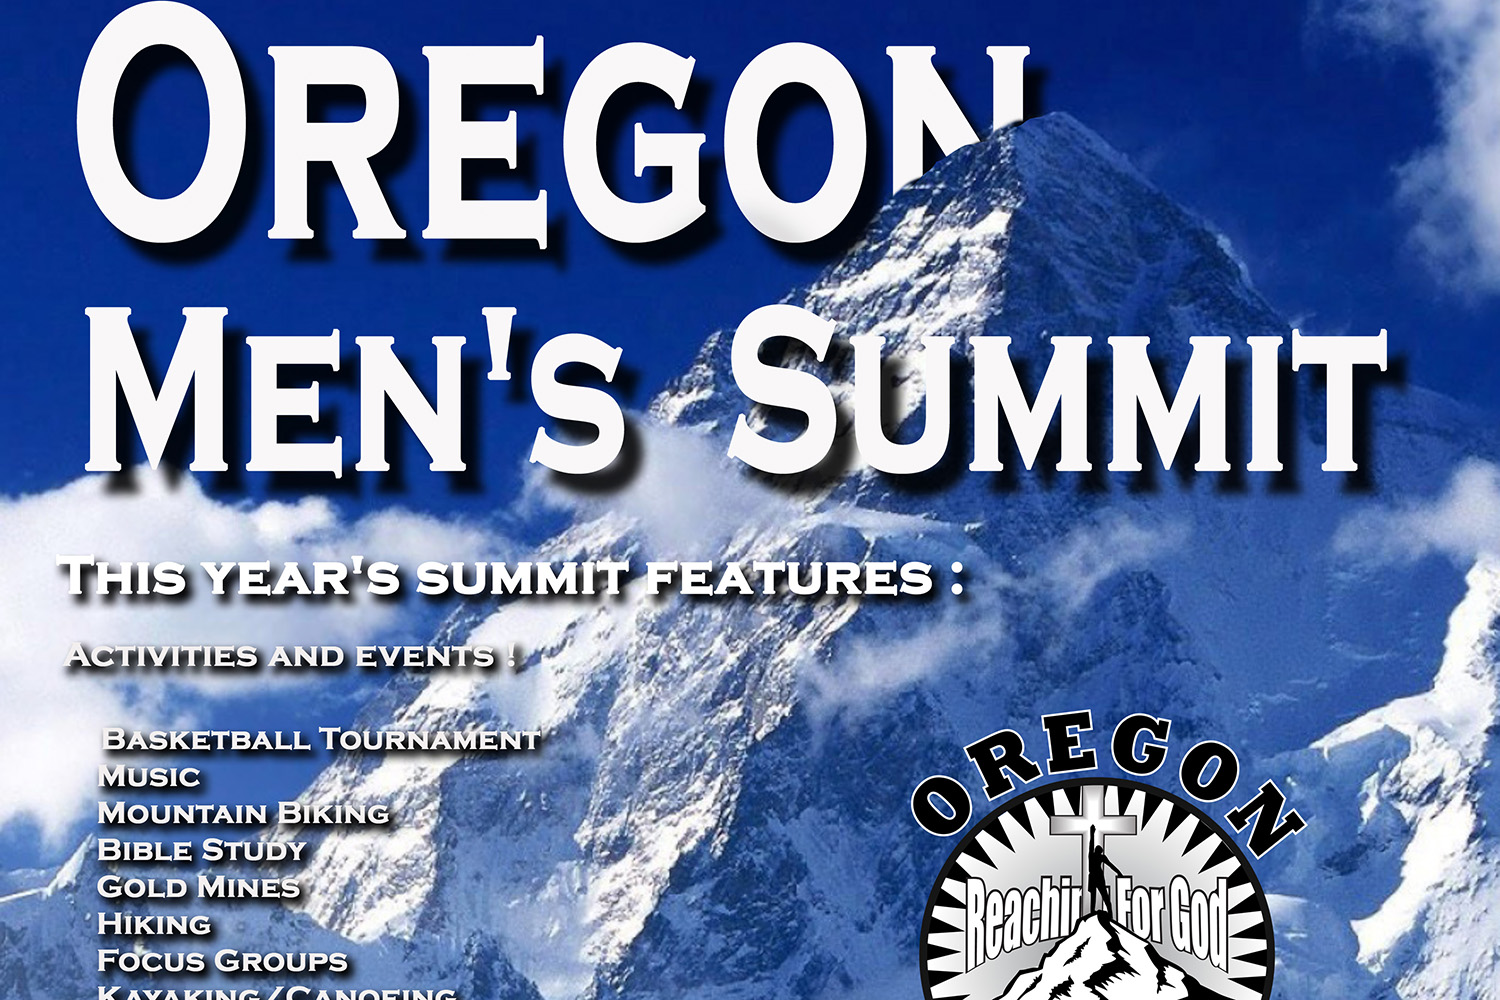 Oregon Men's Summit